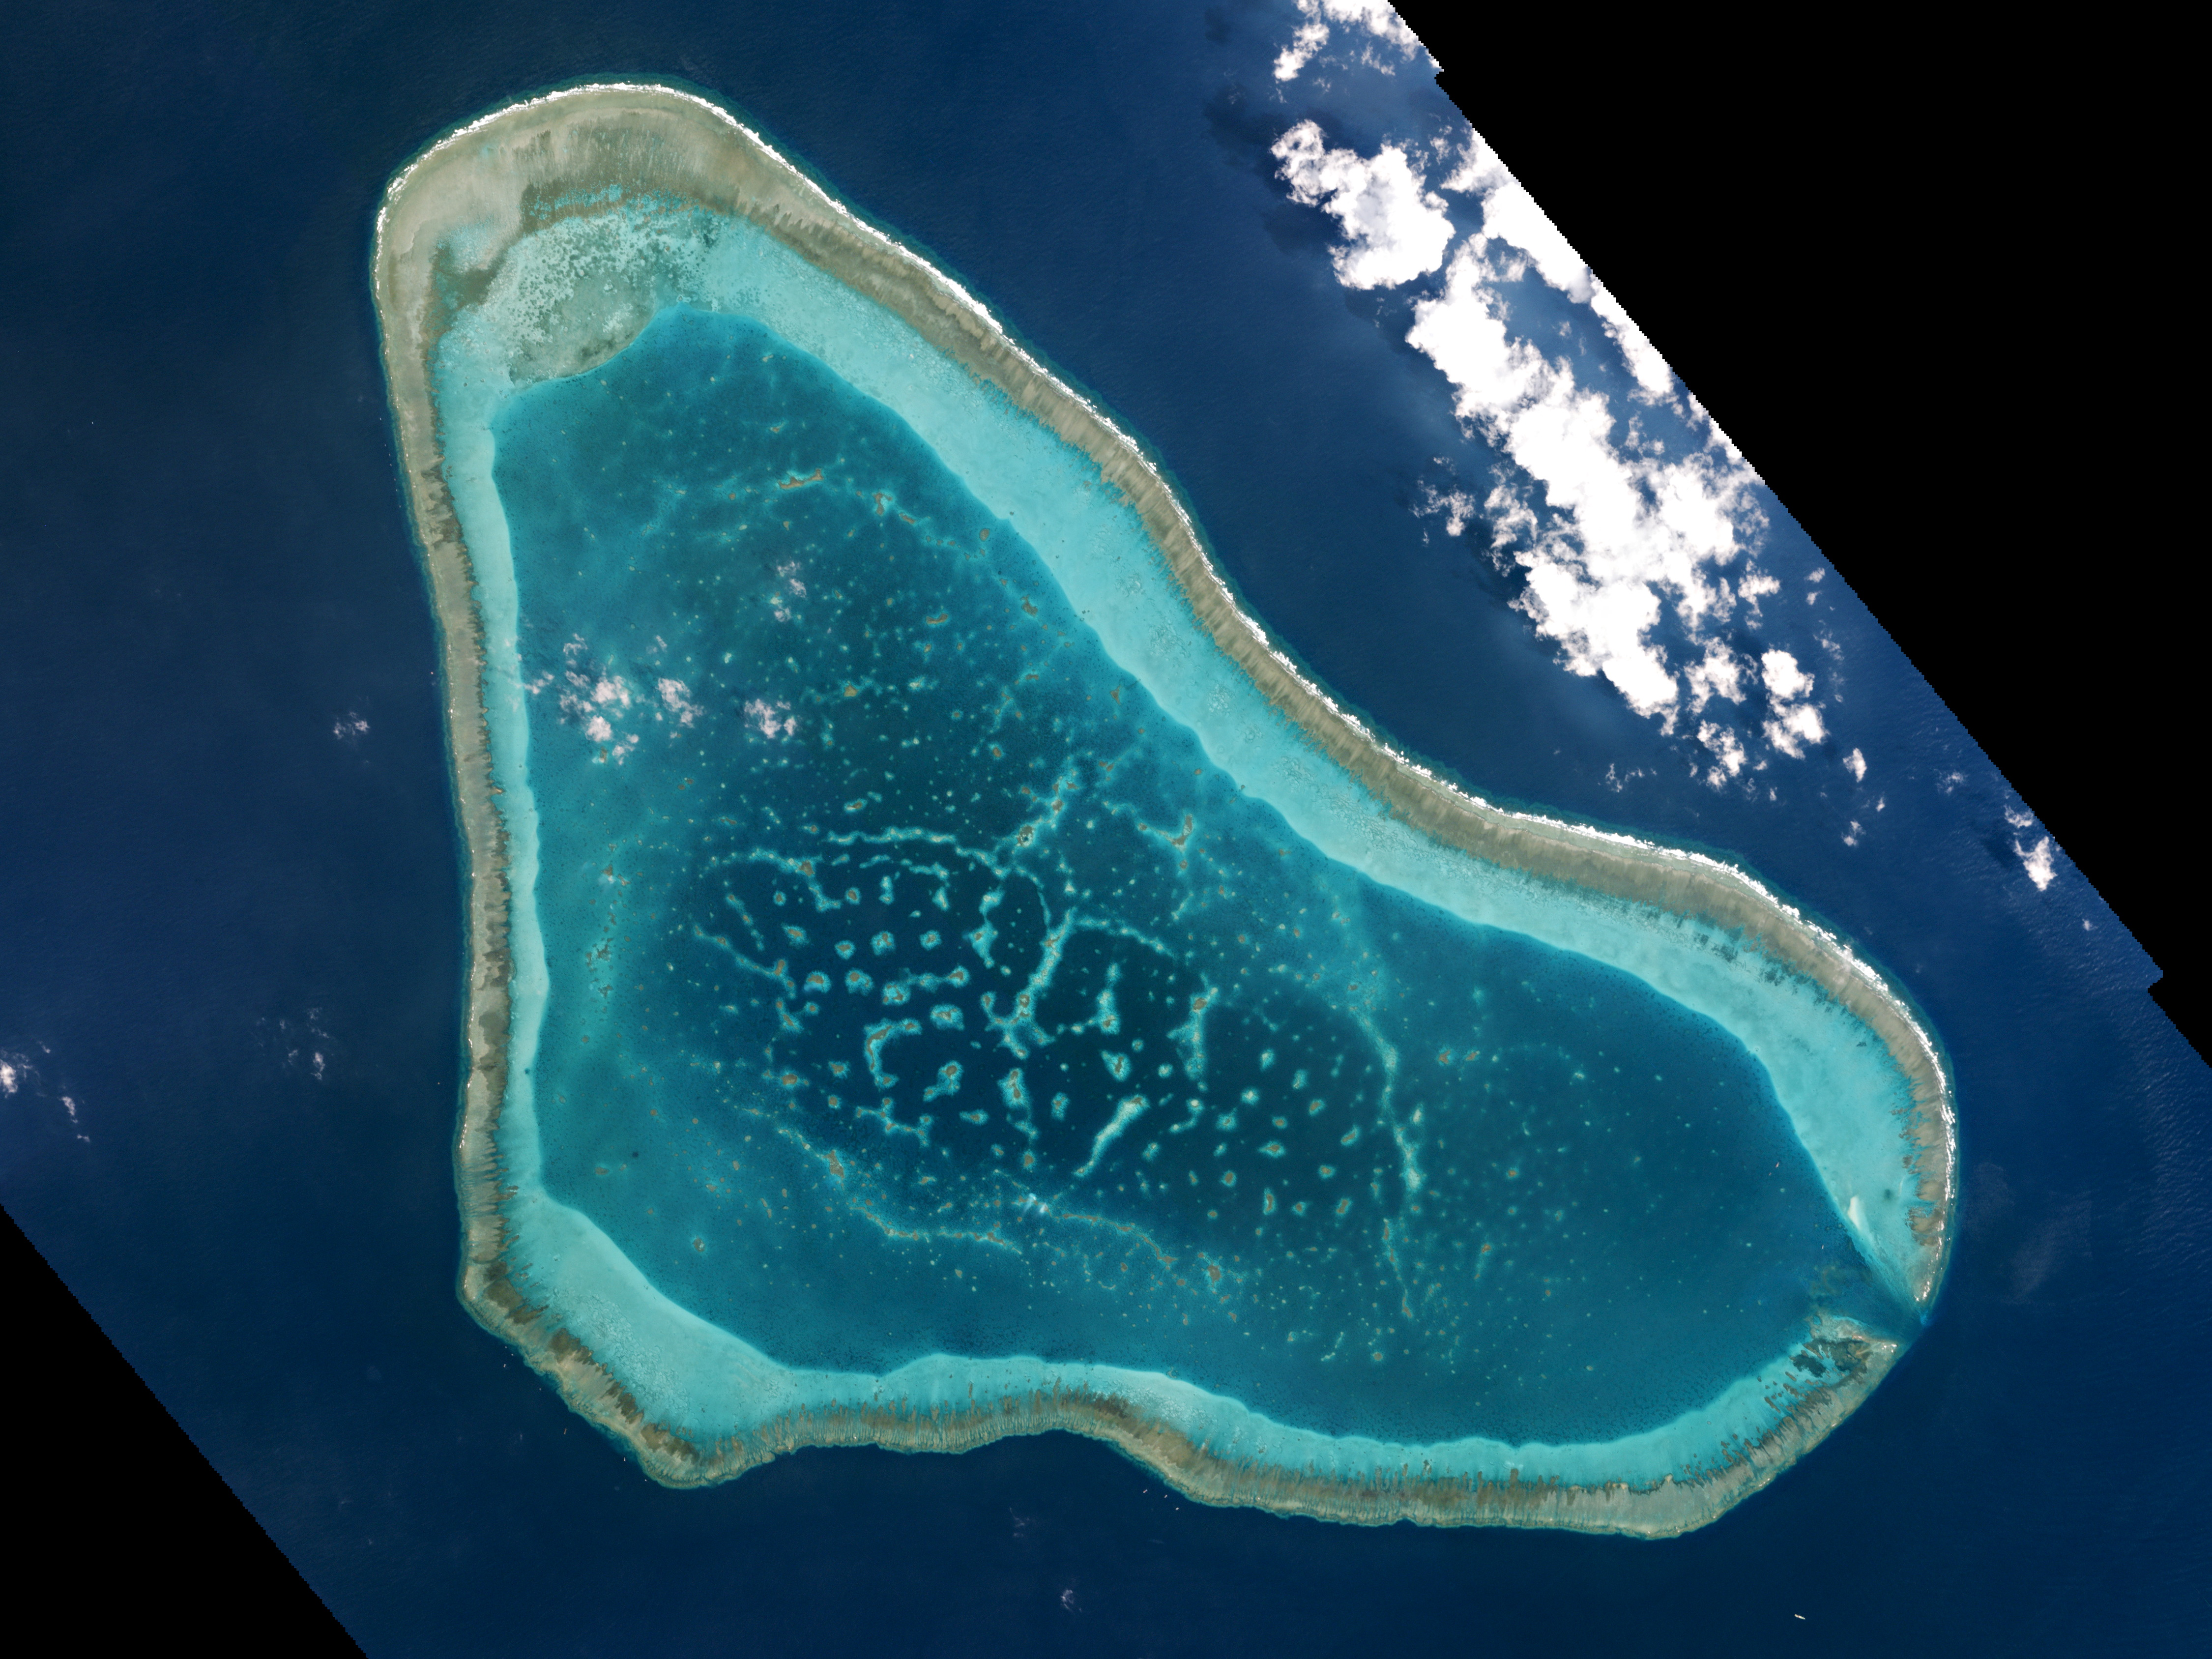 Boats at Scarborough Shoal in the South China Sea are shown in this handout photo provided by Planet Labs, and captured on March 12, 2016